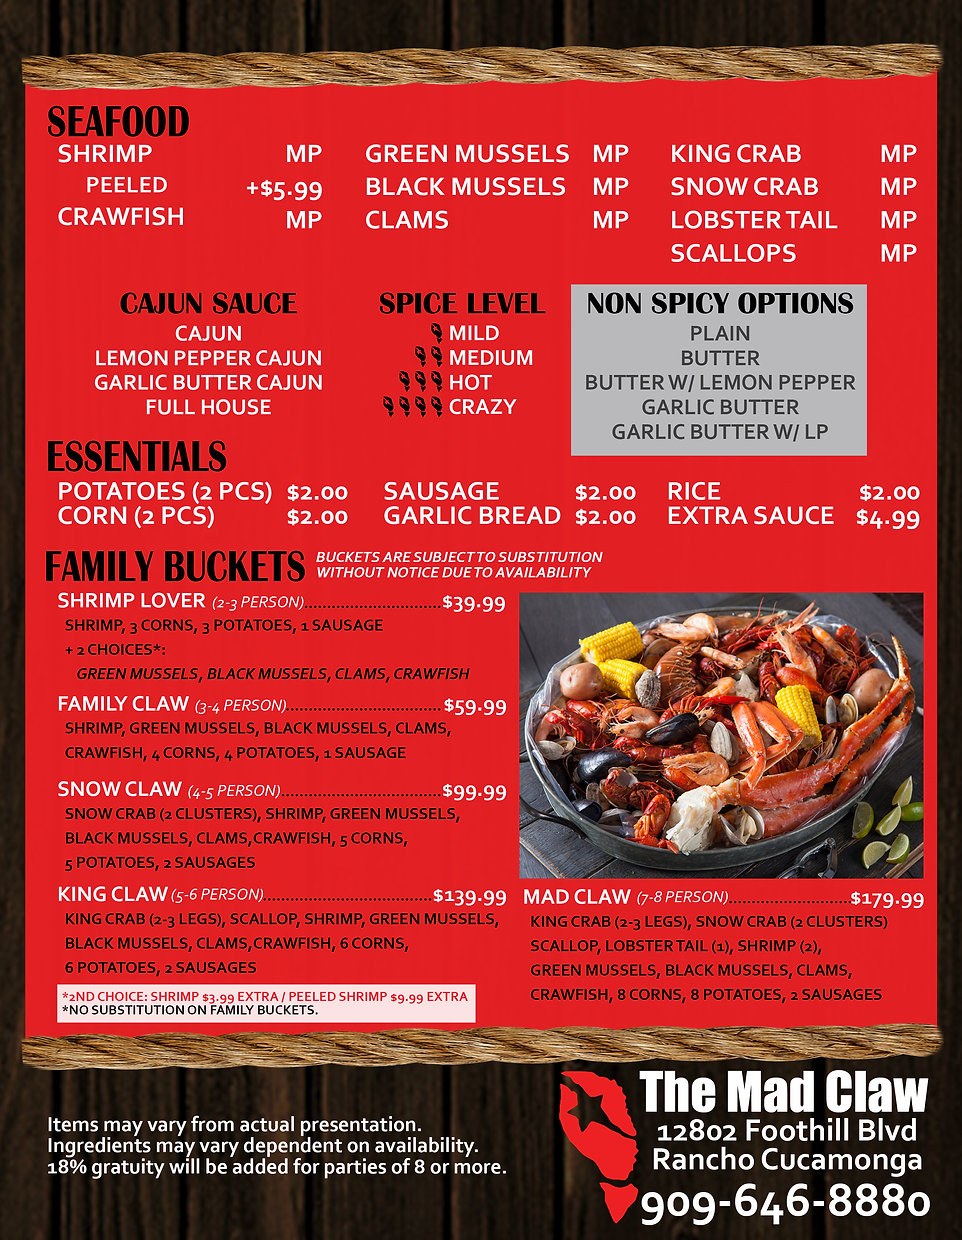 THE MAD CLAW MENU FRONT 08 30 21.jpg